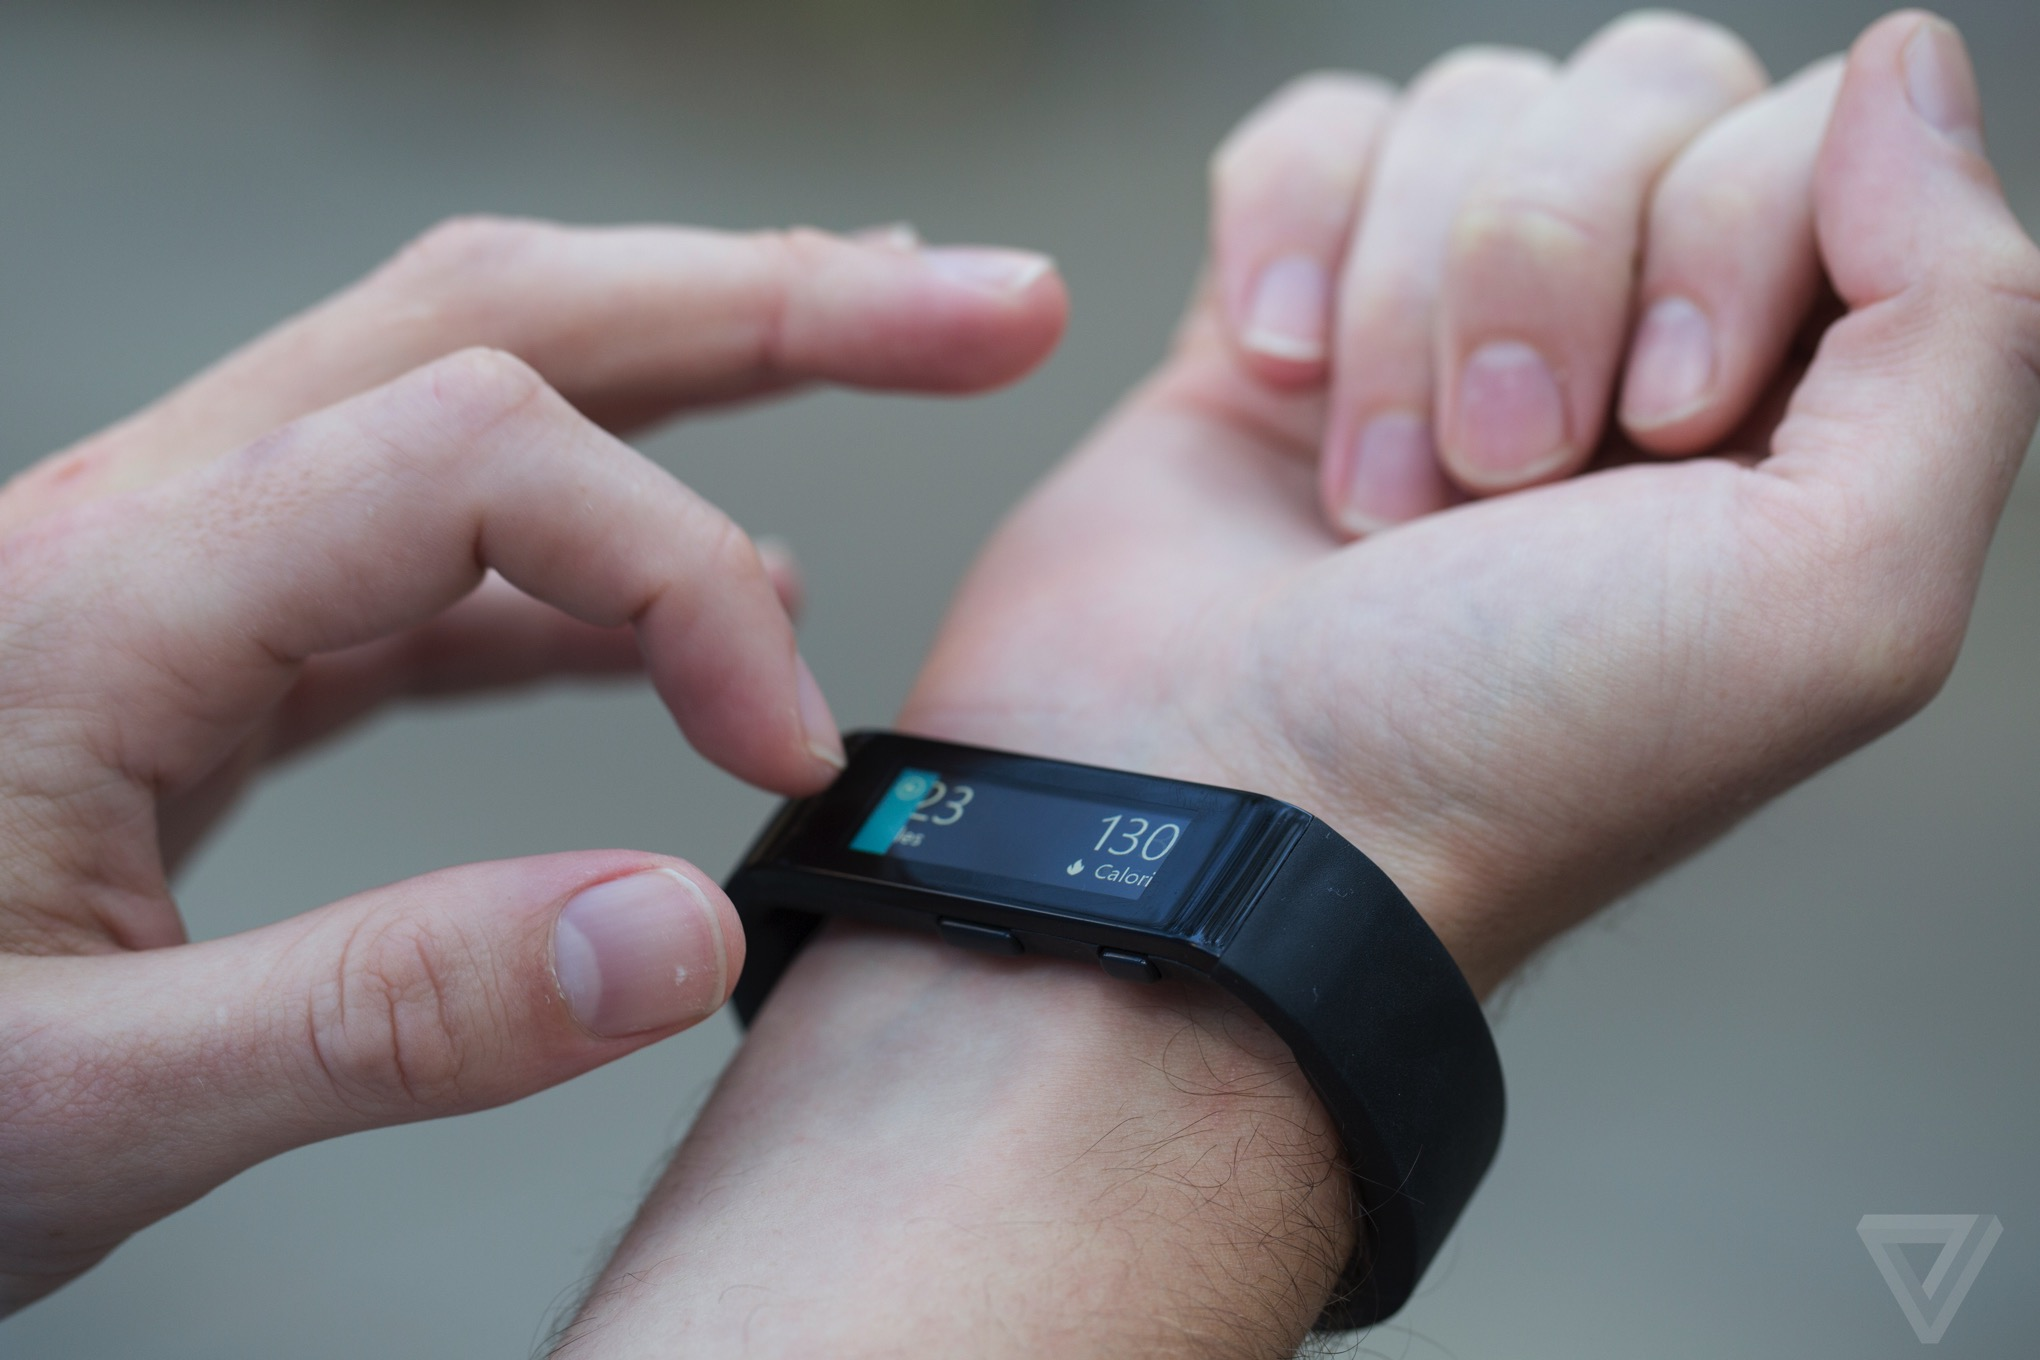 Microsoft Band out of fitness race this year, may not return